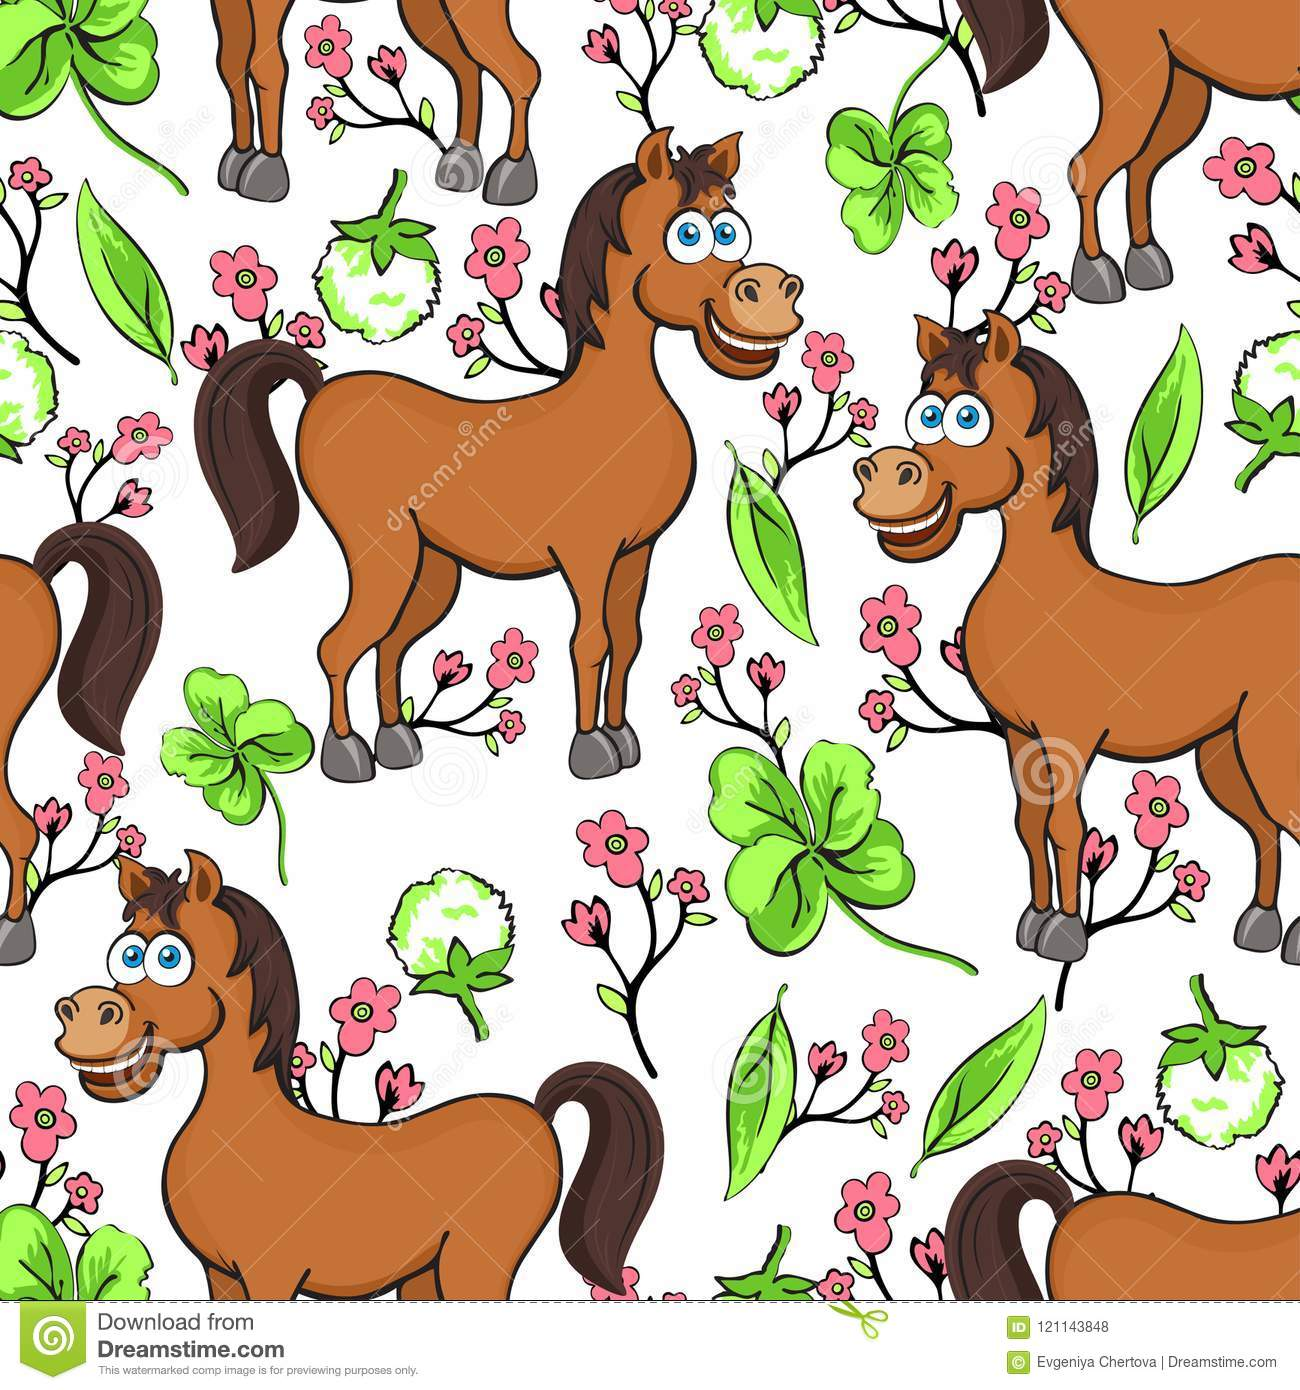 Horse Cartoon Drawing Seamless Pattern Vector Illustration Funny Cute Painted Brown Horse Pink Flowers And Clover Leaves On Whi Stock Vector Illustration Of Cartoon Cute 121143848